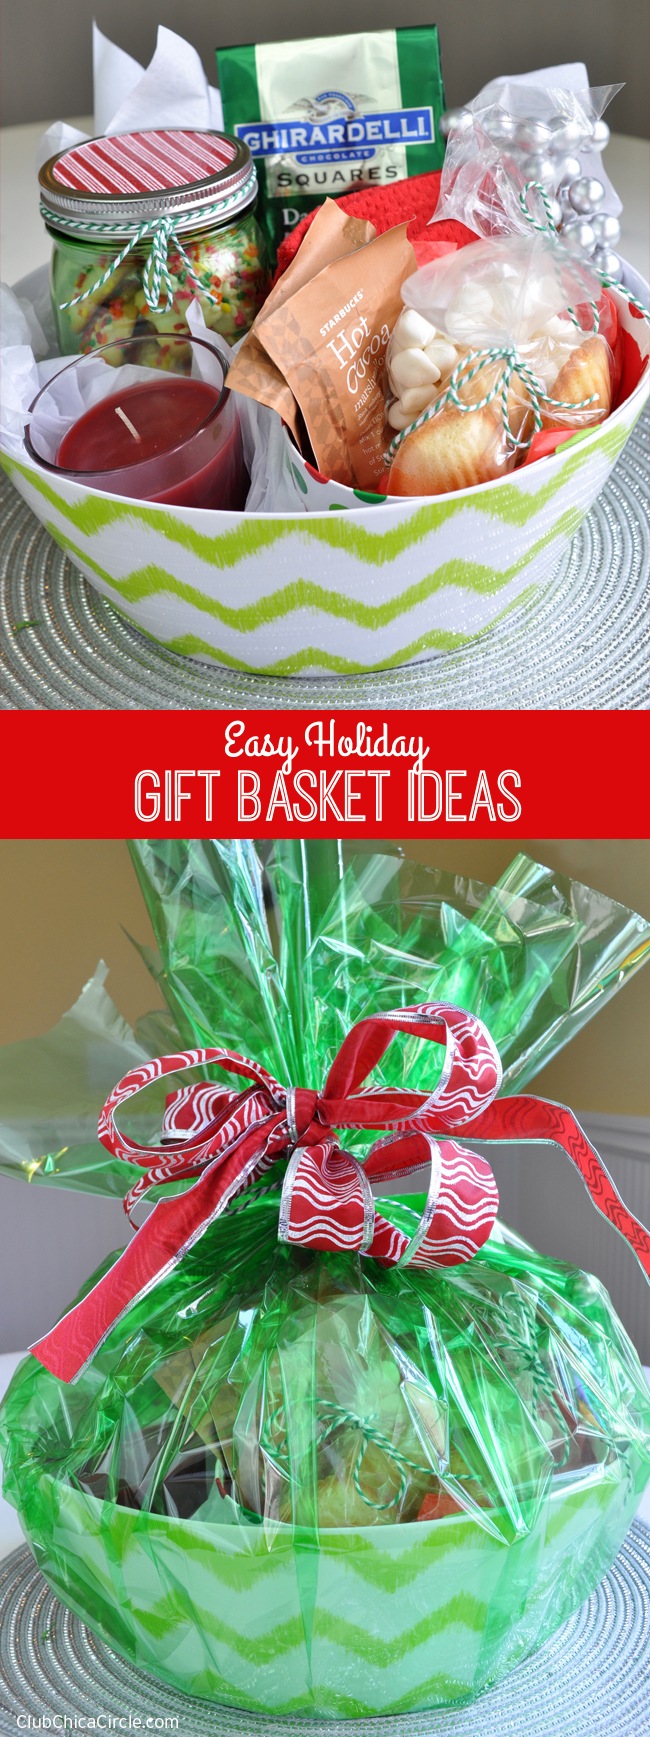 Easy Holiday Gift Basket Ideas + Giveaway